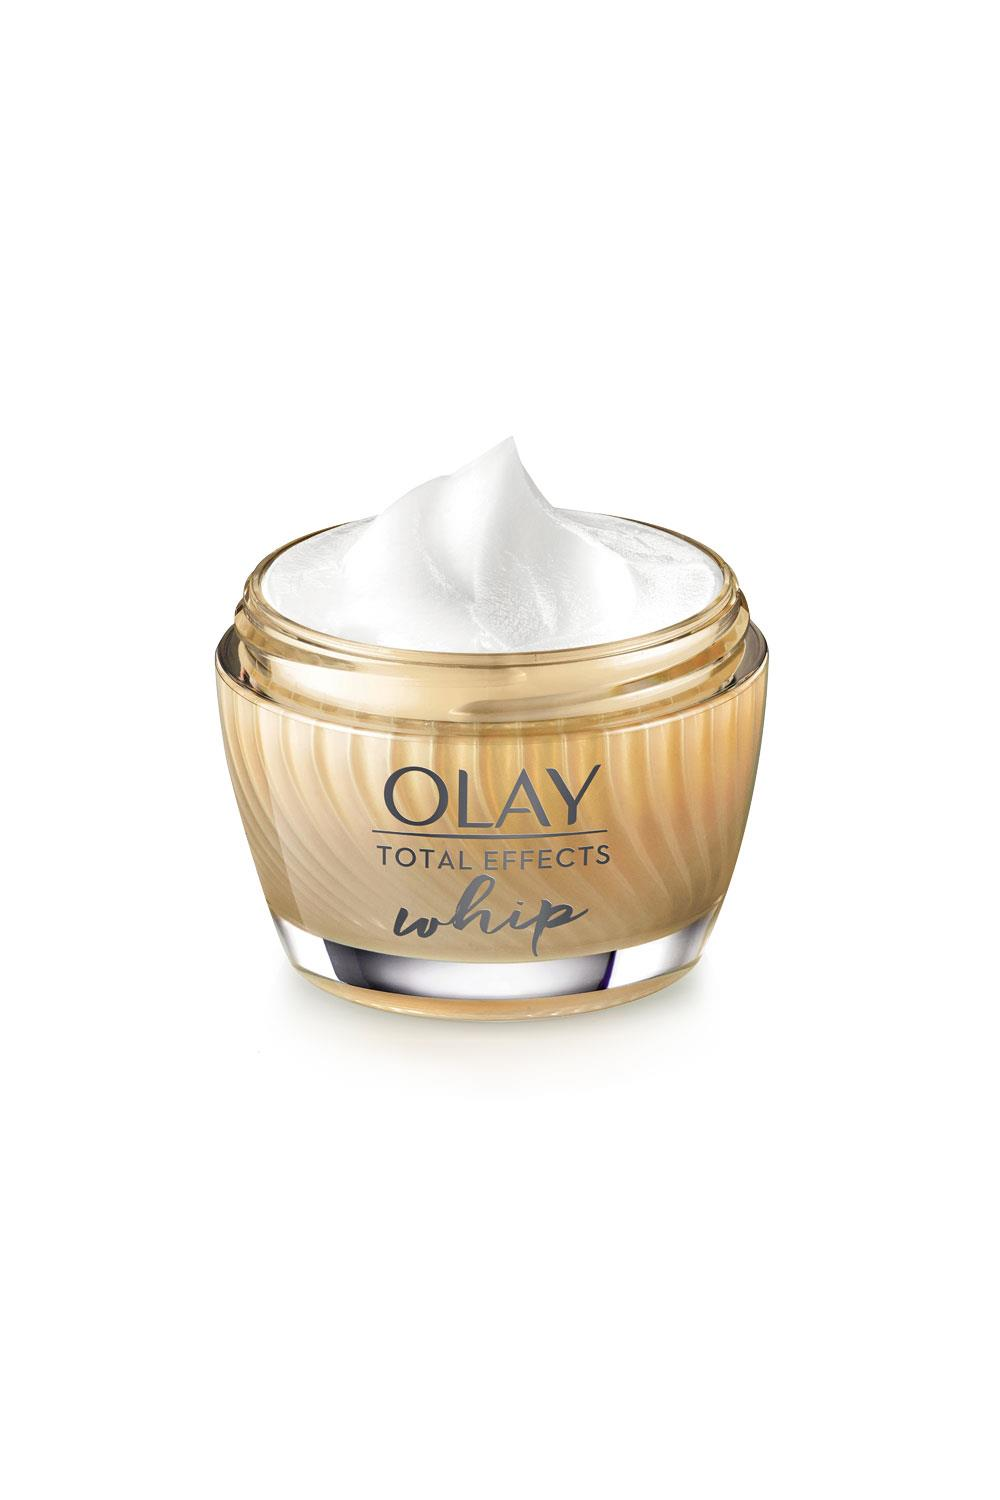 novedades antiedad Olay Total Effects Whip FPS 30, 39,99€